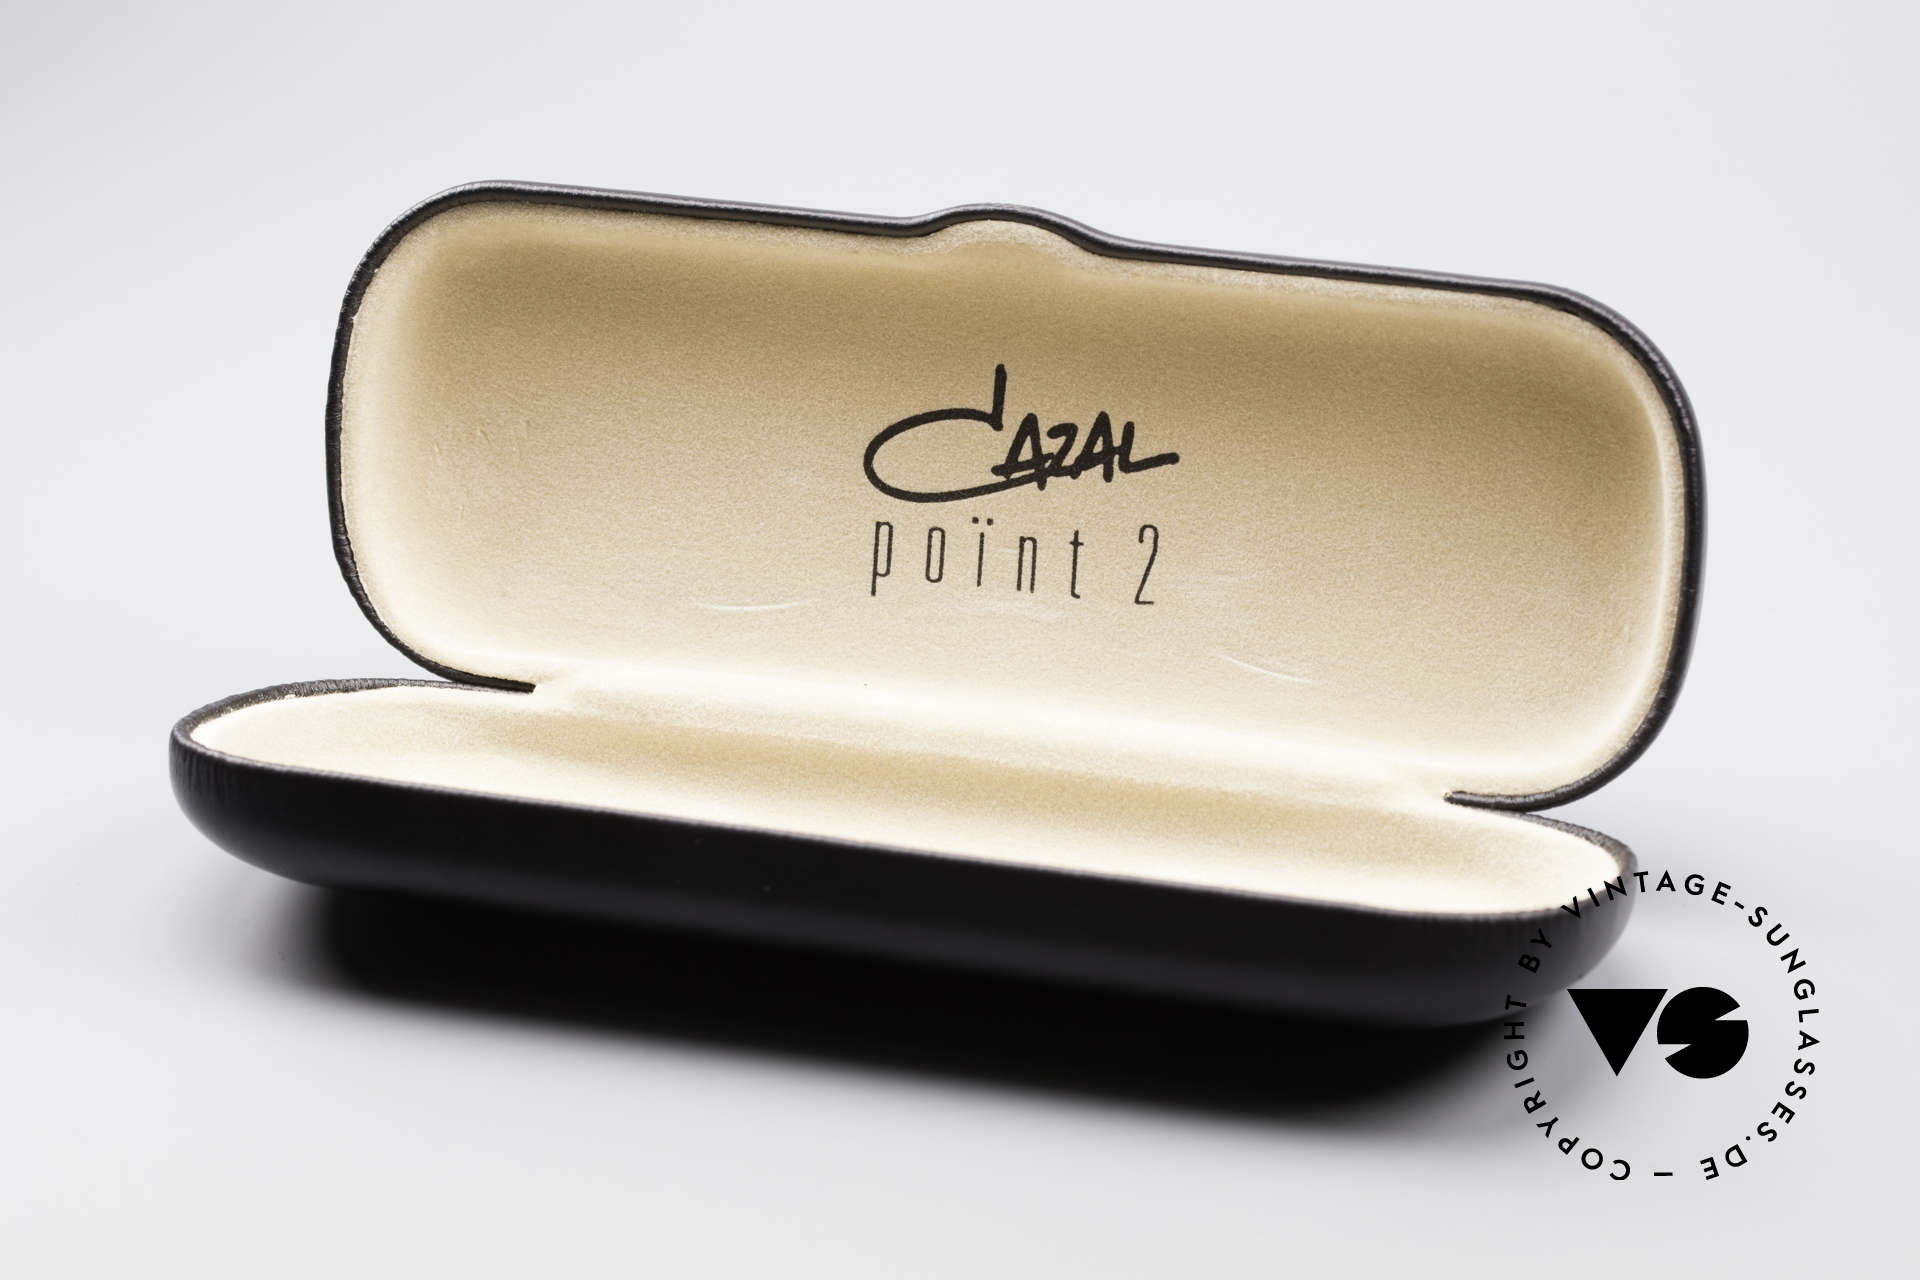 Cazal 1114 - Point 2 Round Oval Vintage Frame, NO retro eyeglasses, but an authentic old 90's original, Made for Men and Women